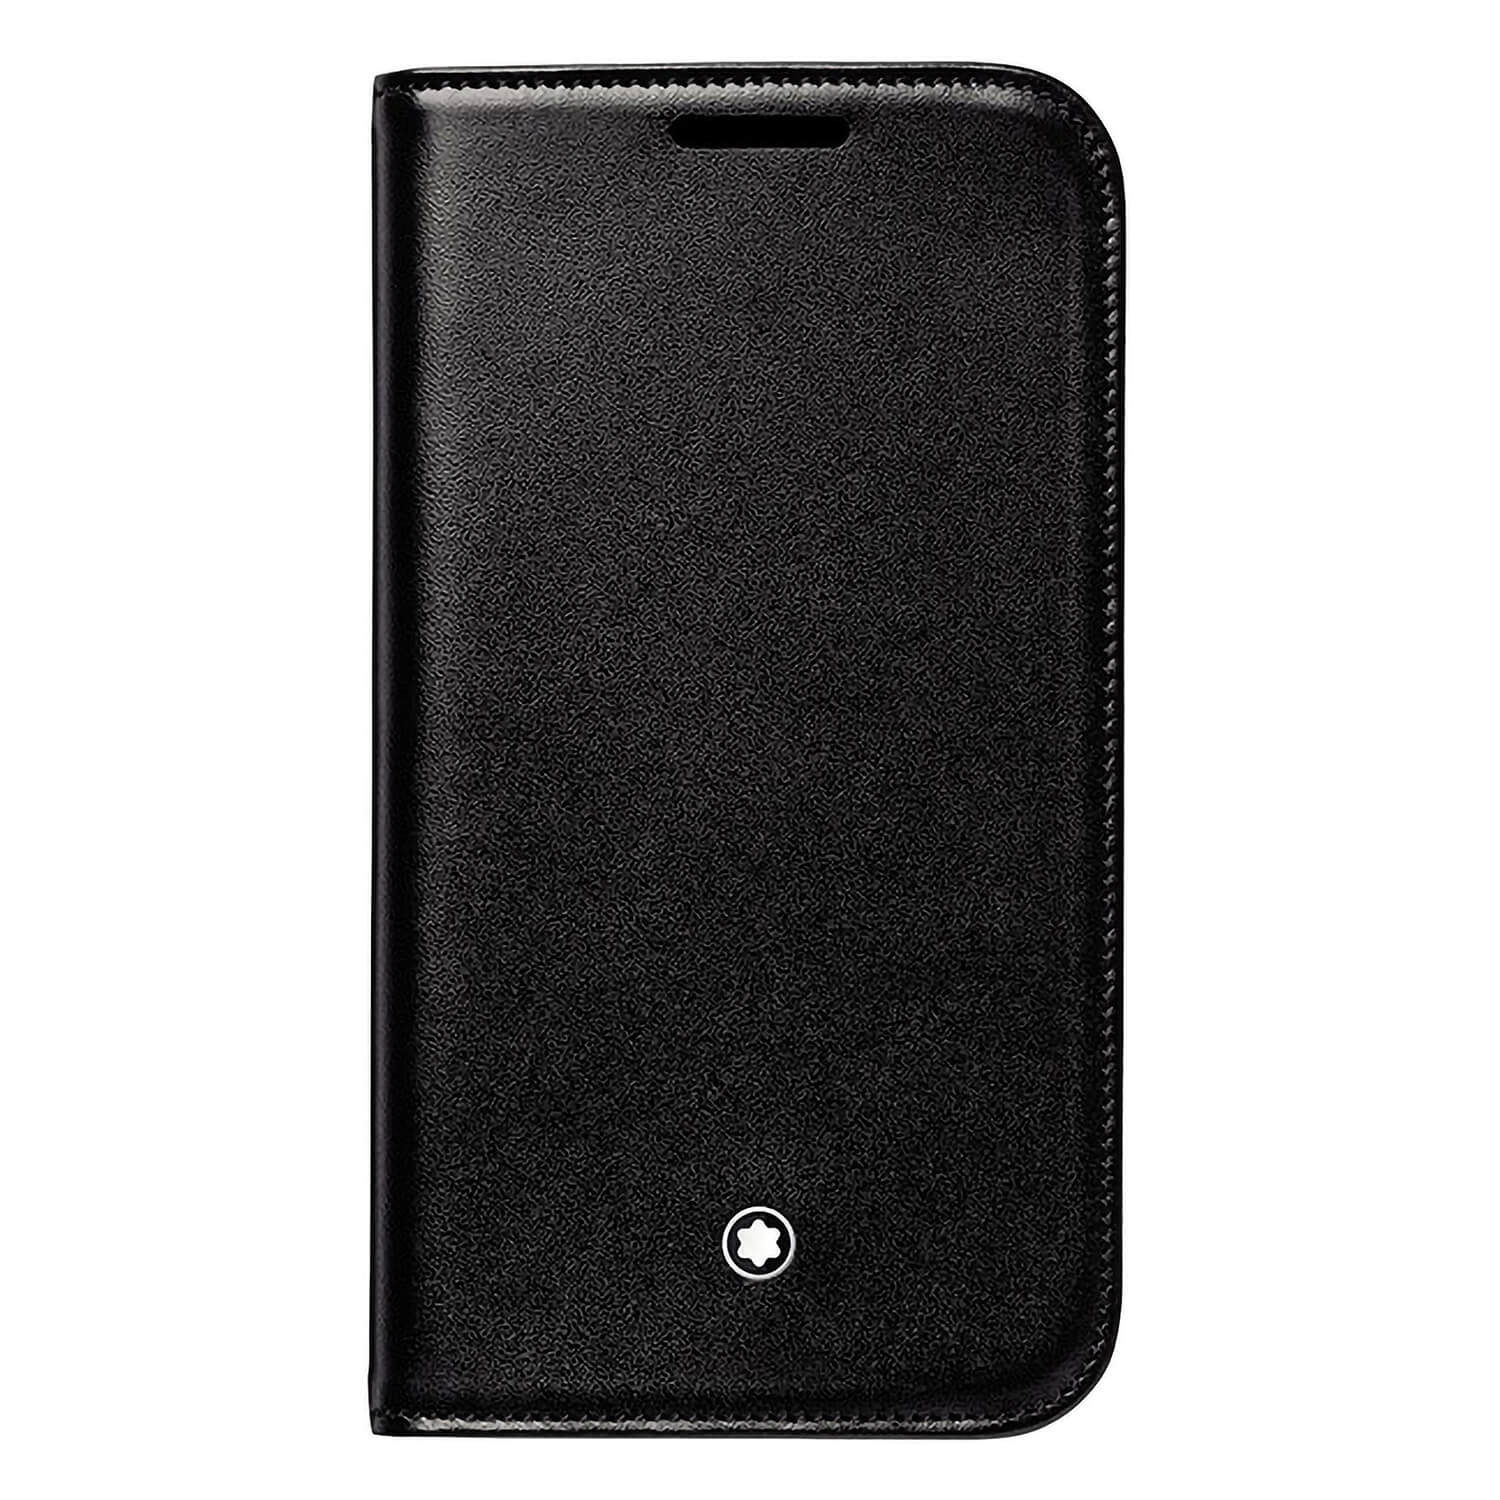 Montblanc Meisterstuck Samsung Galaxy 4 black leather mobile phone case